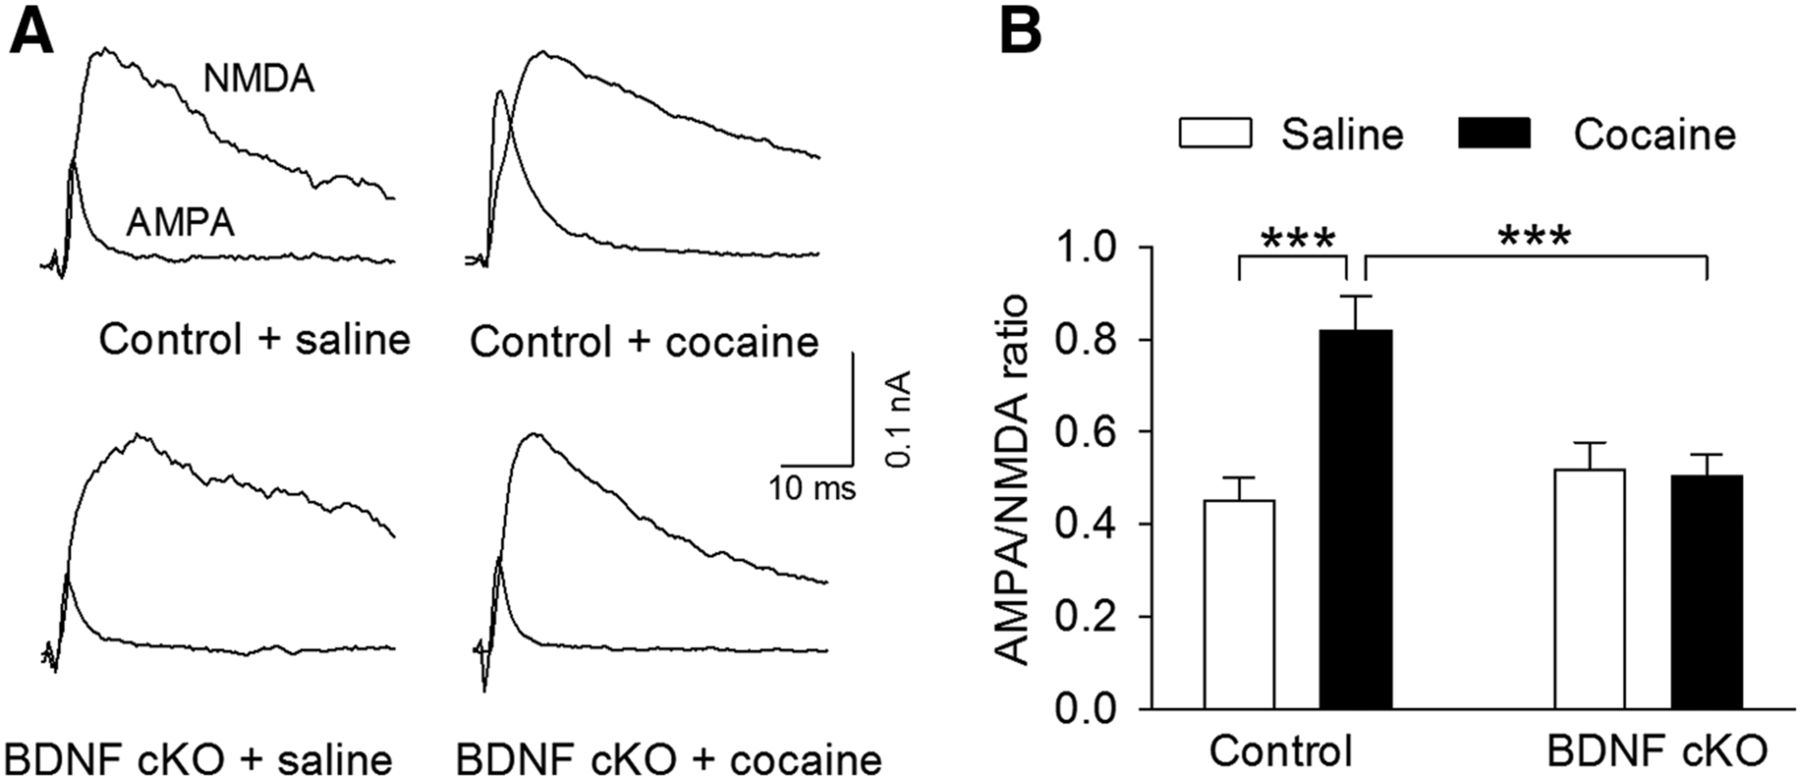 BDNF Interacts with Endocannabinoids to Regulate Cocaine